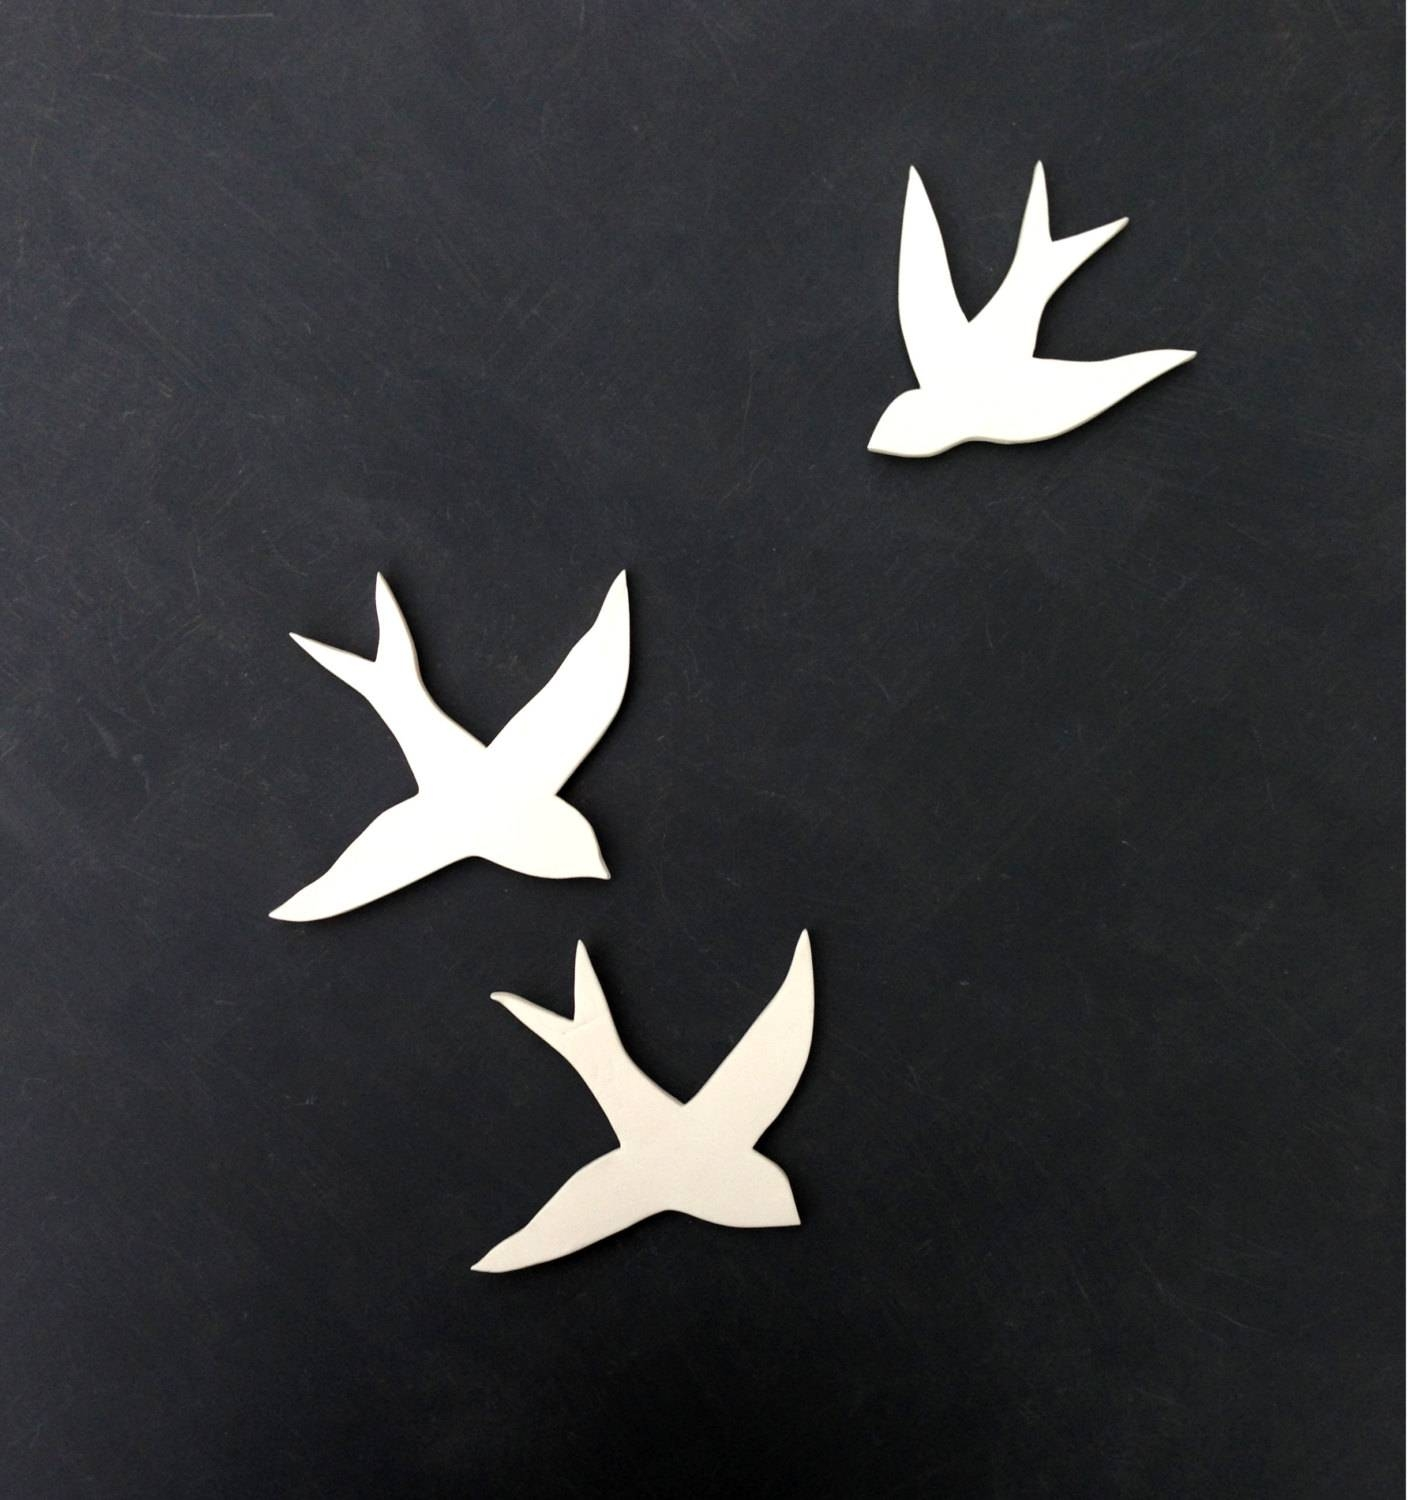 Wall Art Birds Set Of Three Handmade Porcelain Swallows With Regard To Most Current Ceramic Bird Wall Art (View 7 of 30)